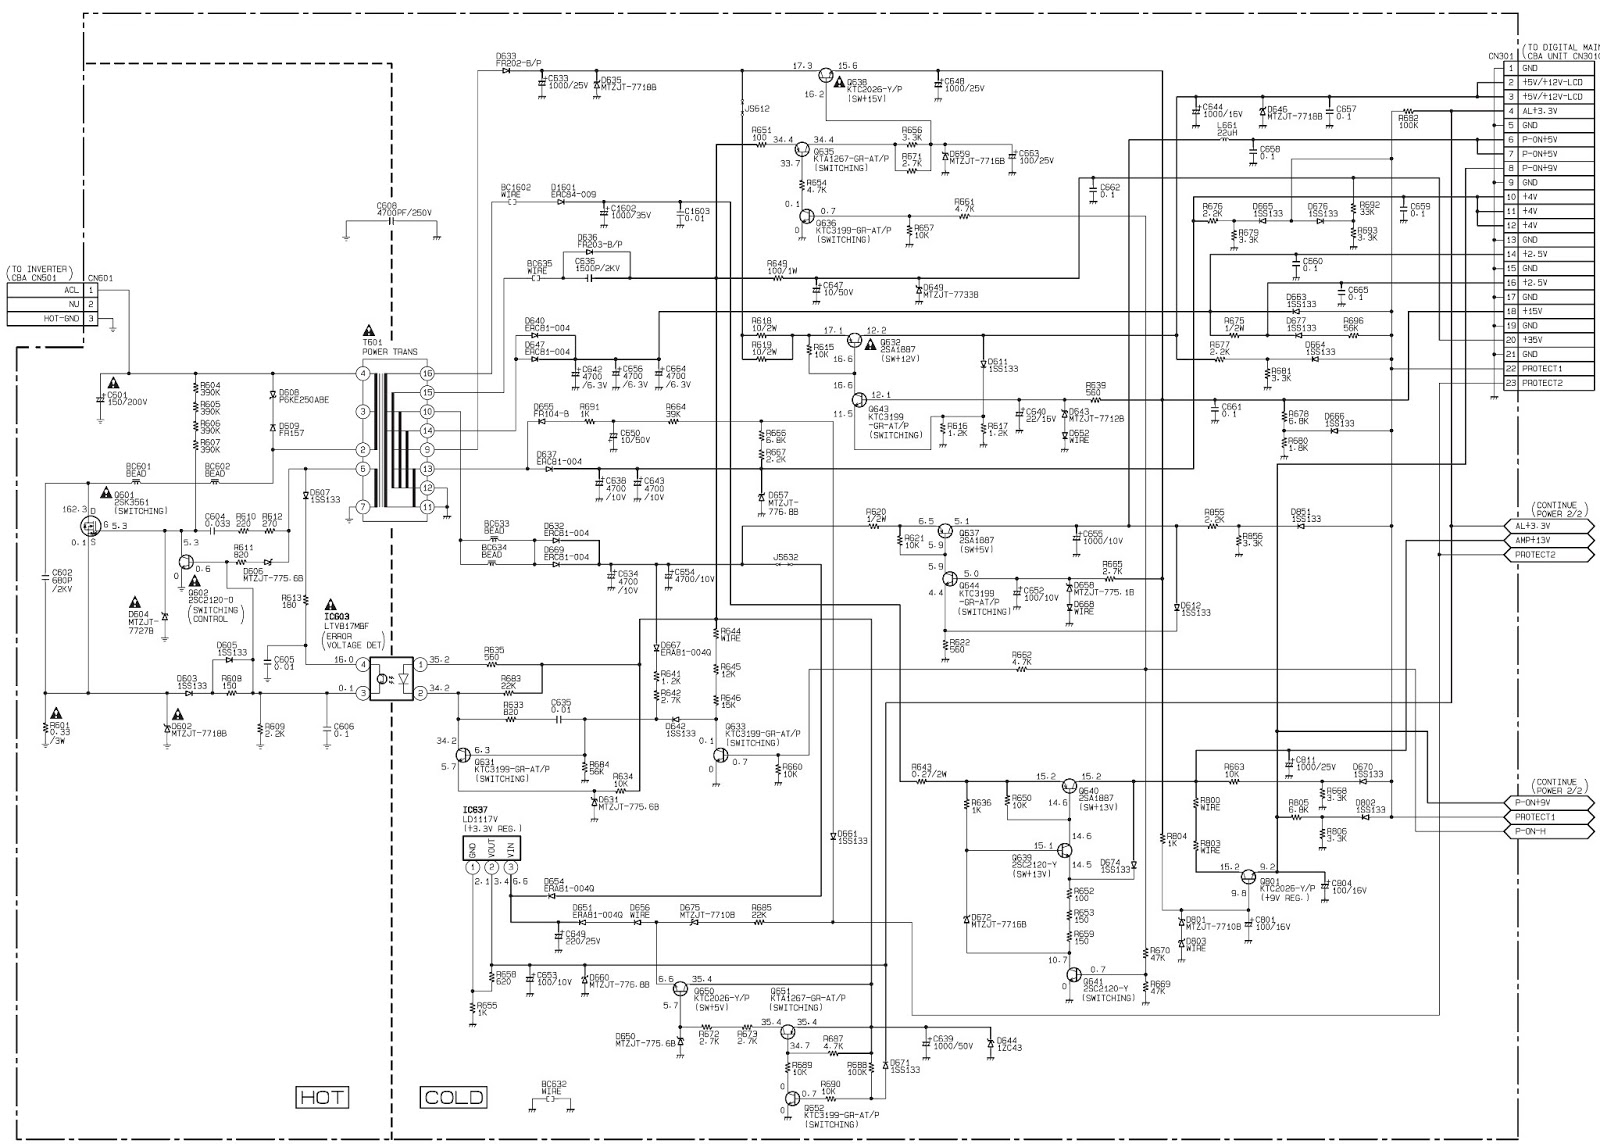 Emerson Ups Circuit Diagram Free Wiring For You Power Supply And Lc320em8 A Lcd Tv Service Mode Simple Electrical Schematic Diagrams